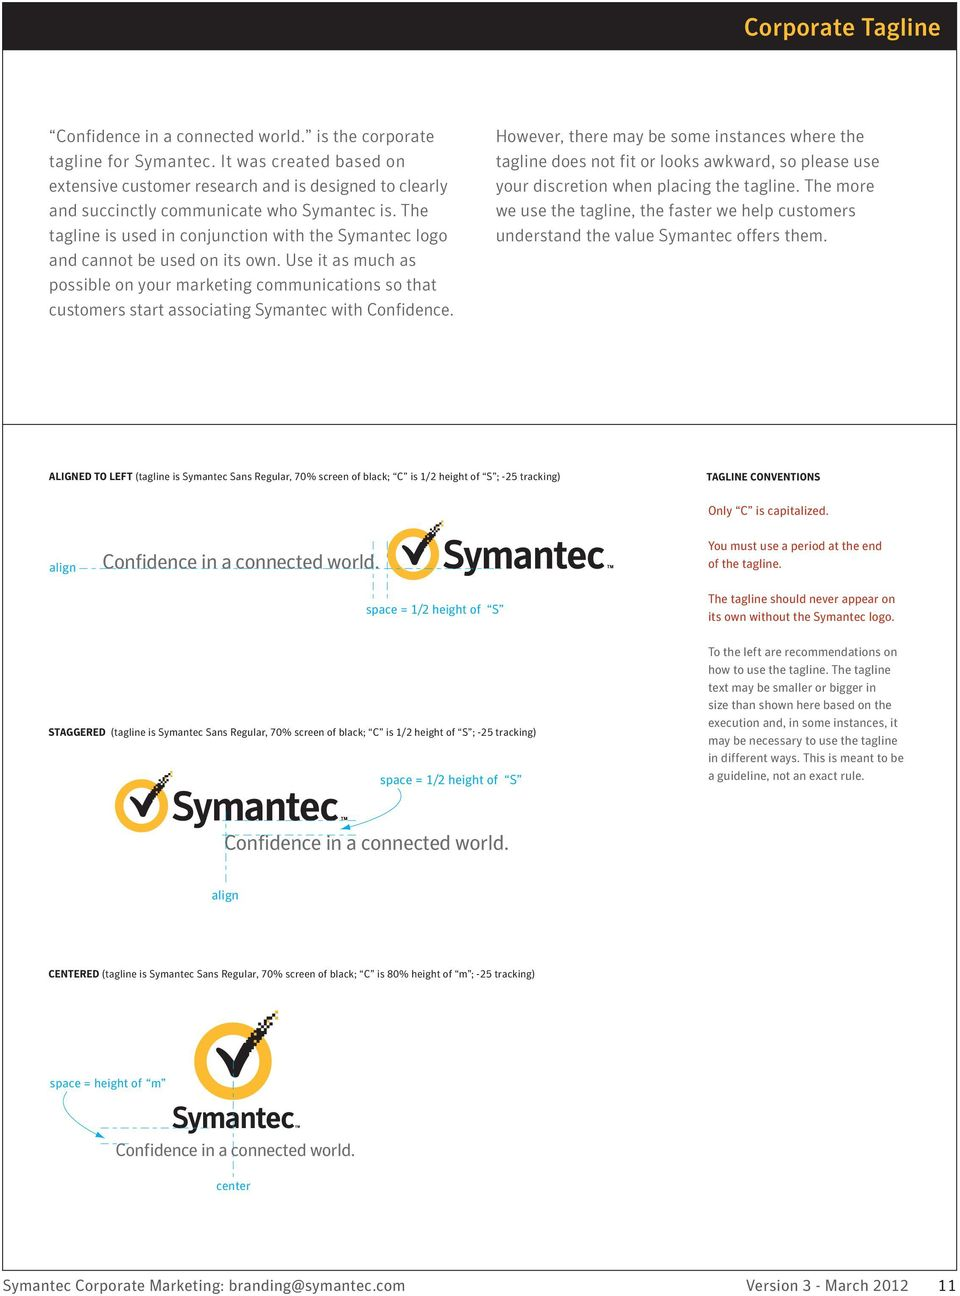 The tagline is used in conjunction with the Symantec logo and cannot be used on its own.